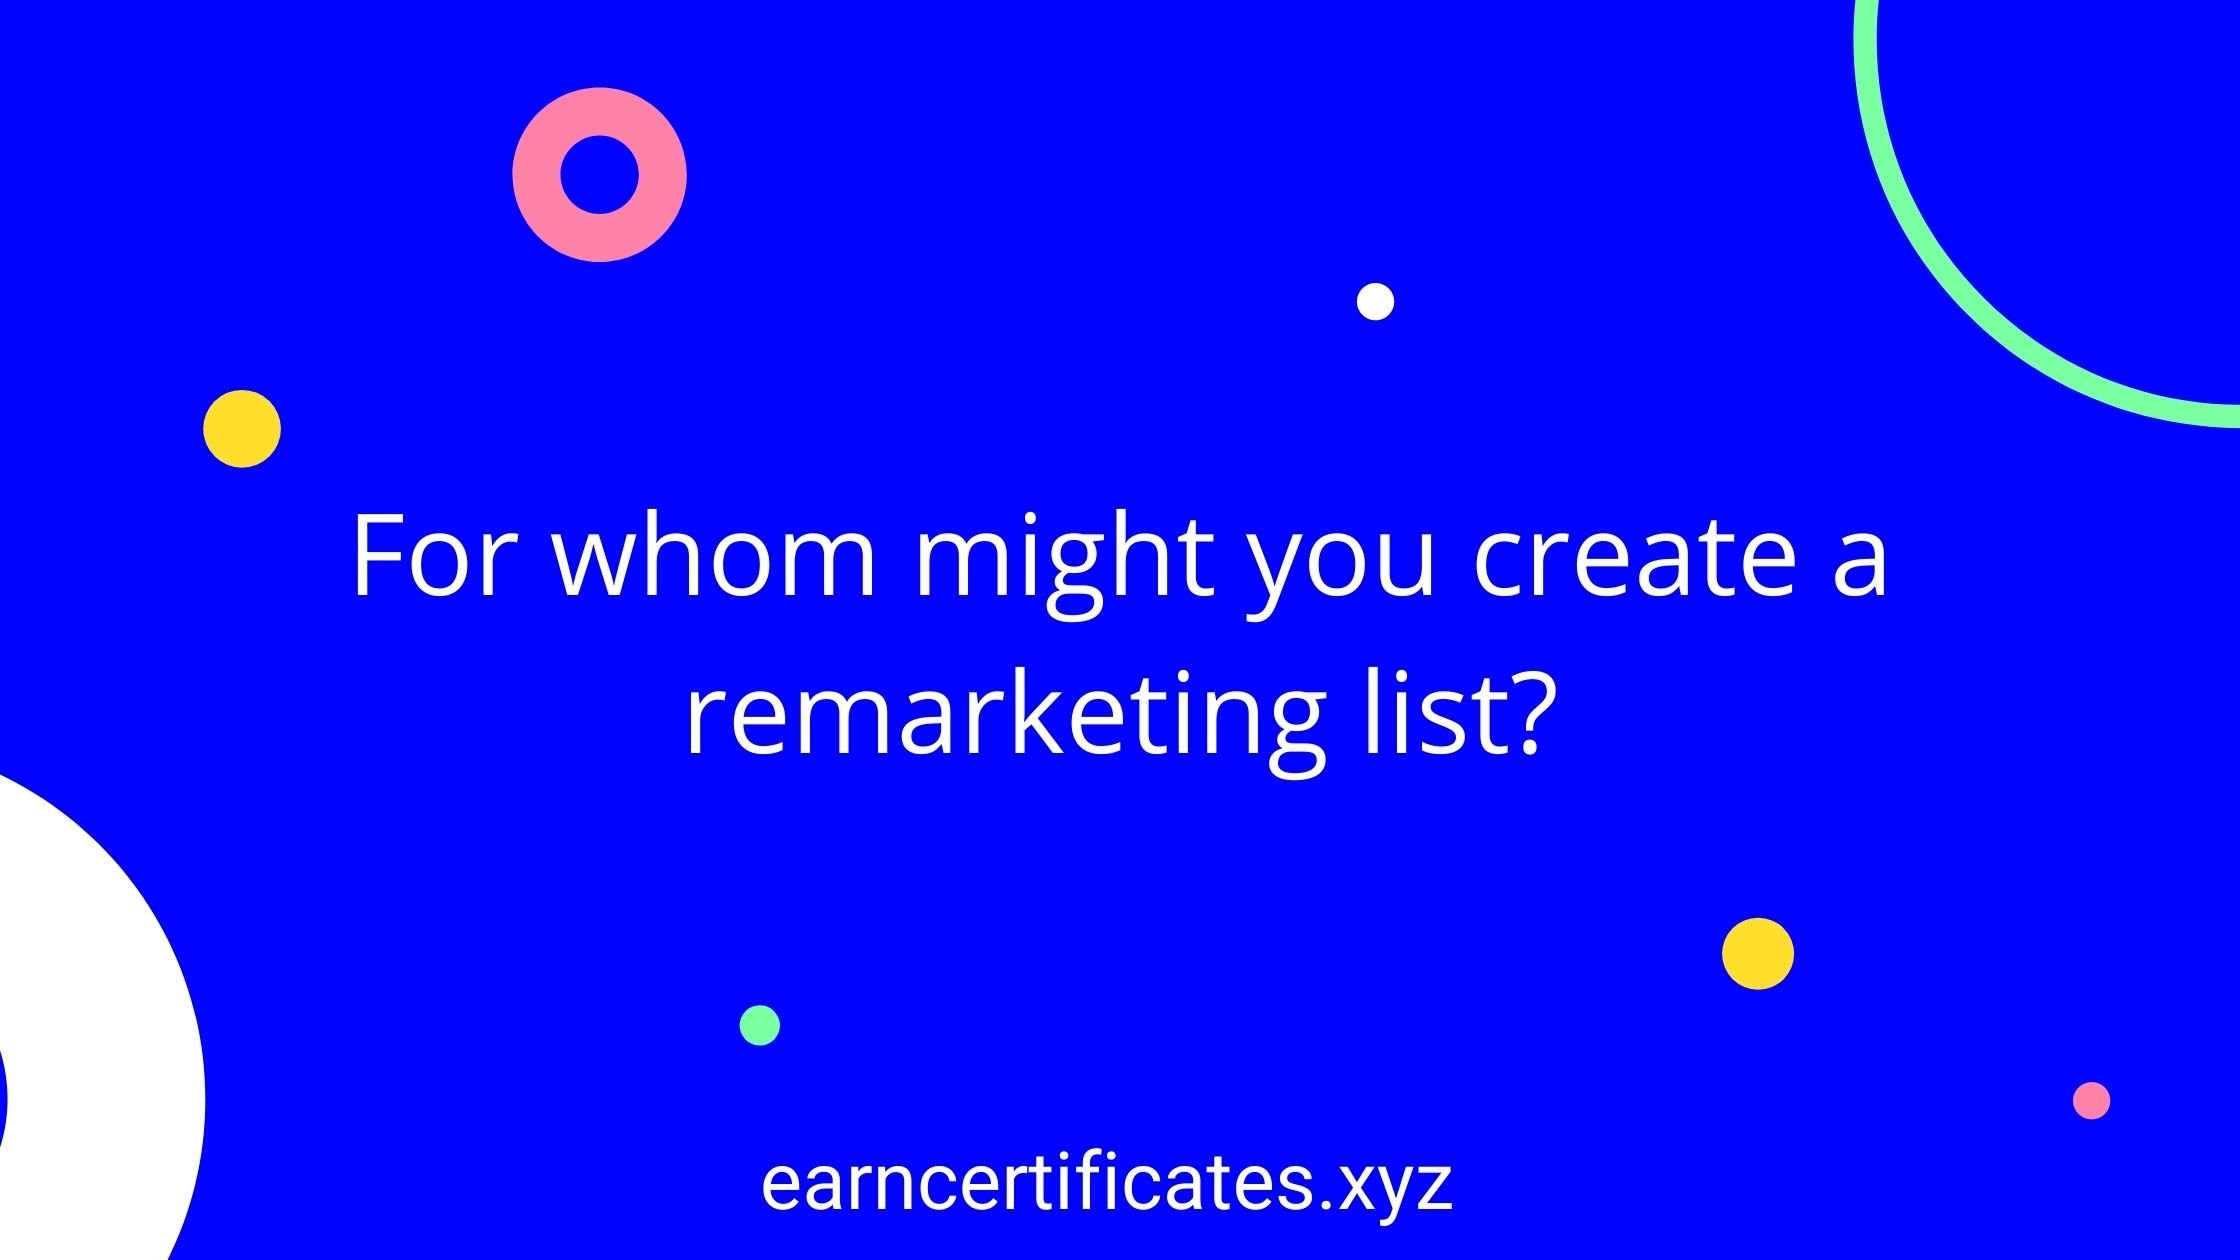 For whom might you create a remarketing list?